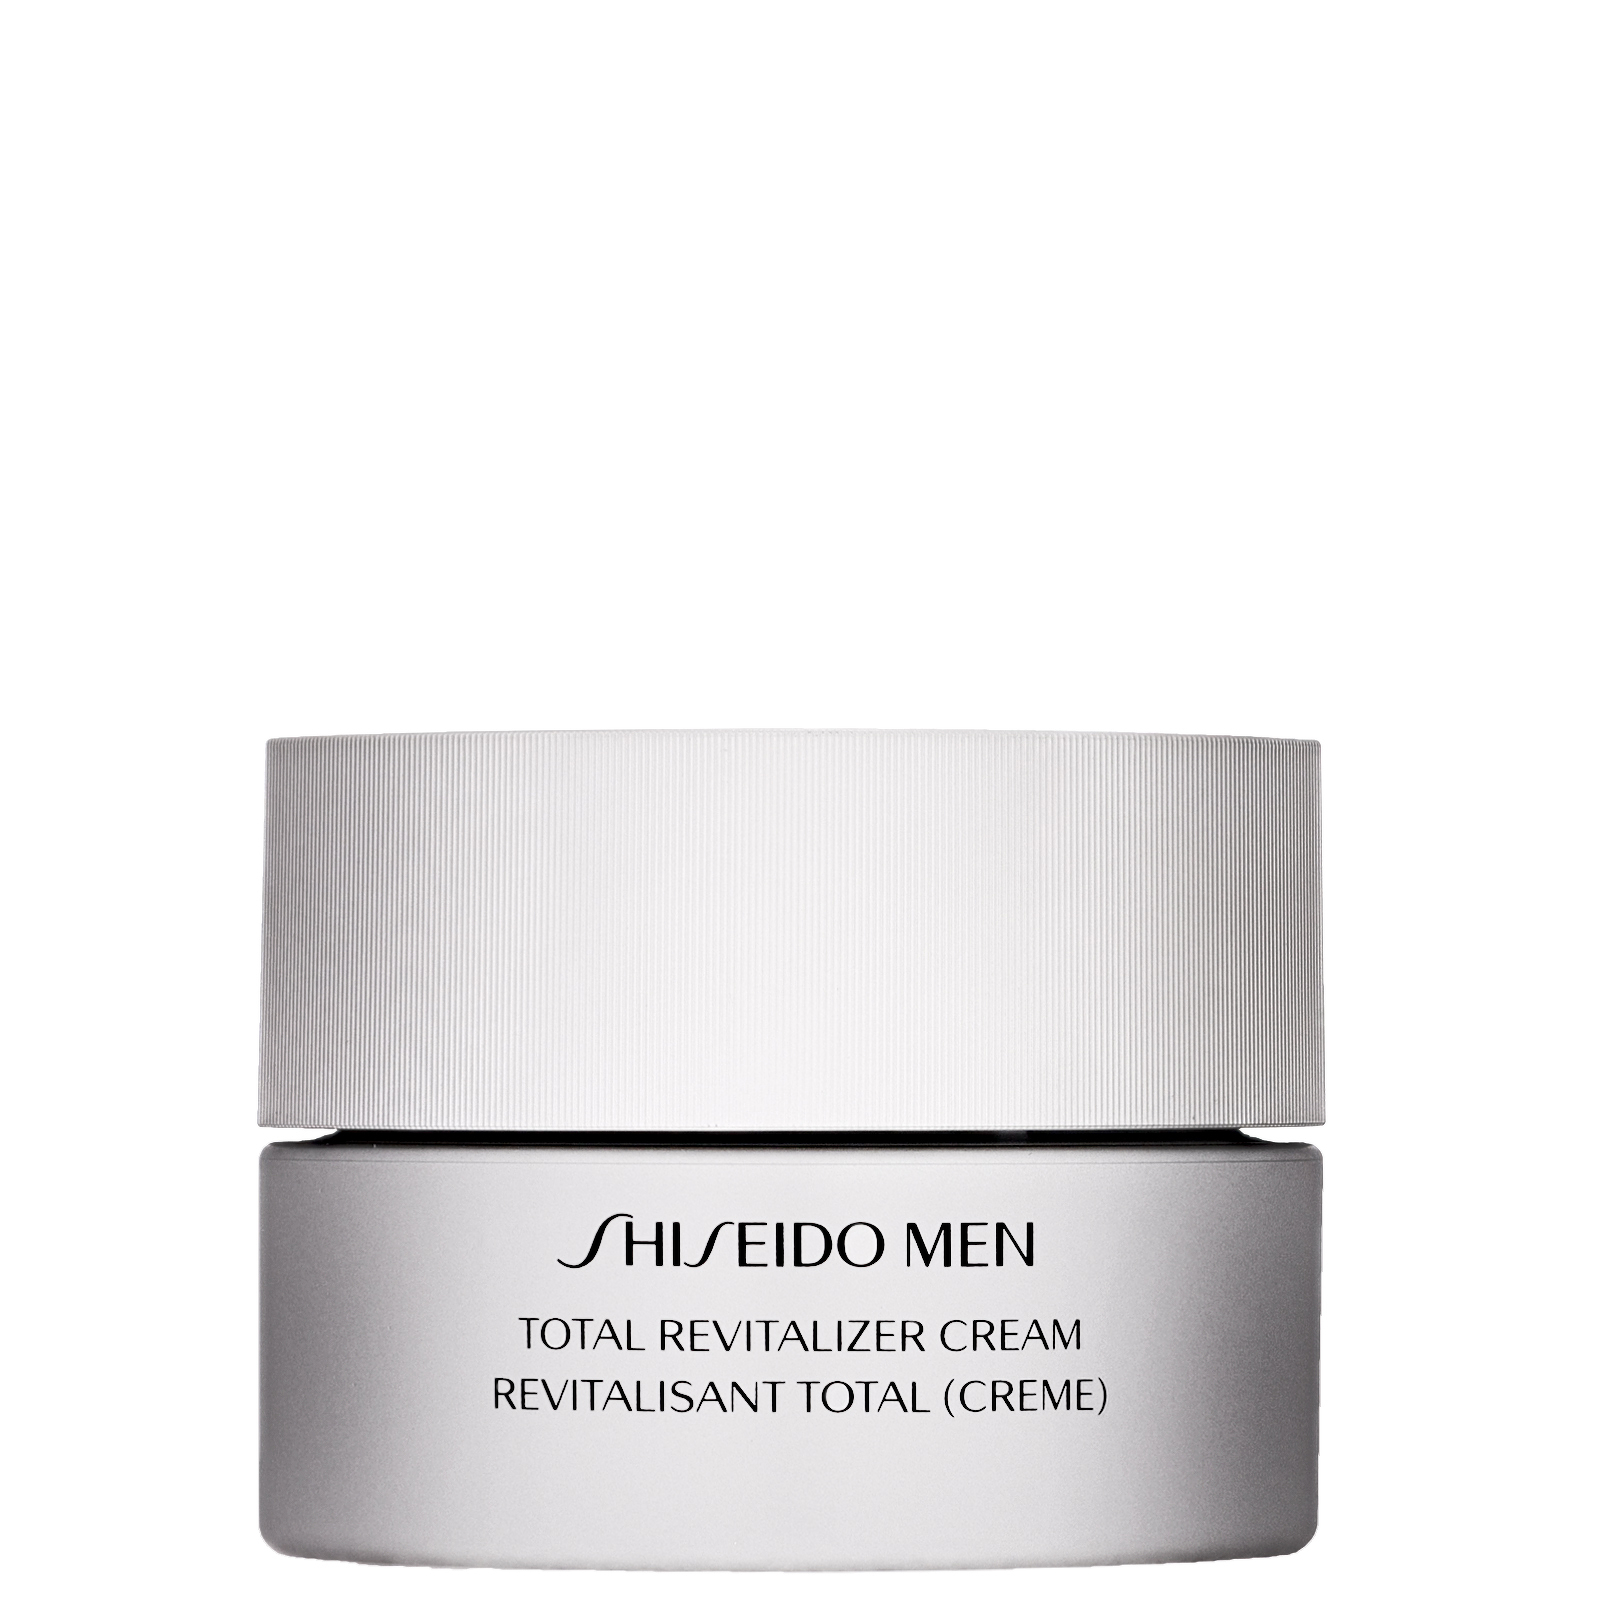 Shiseido Men Total Revitalizer Cream 50ml / 1.8 oz.